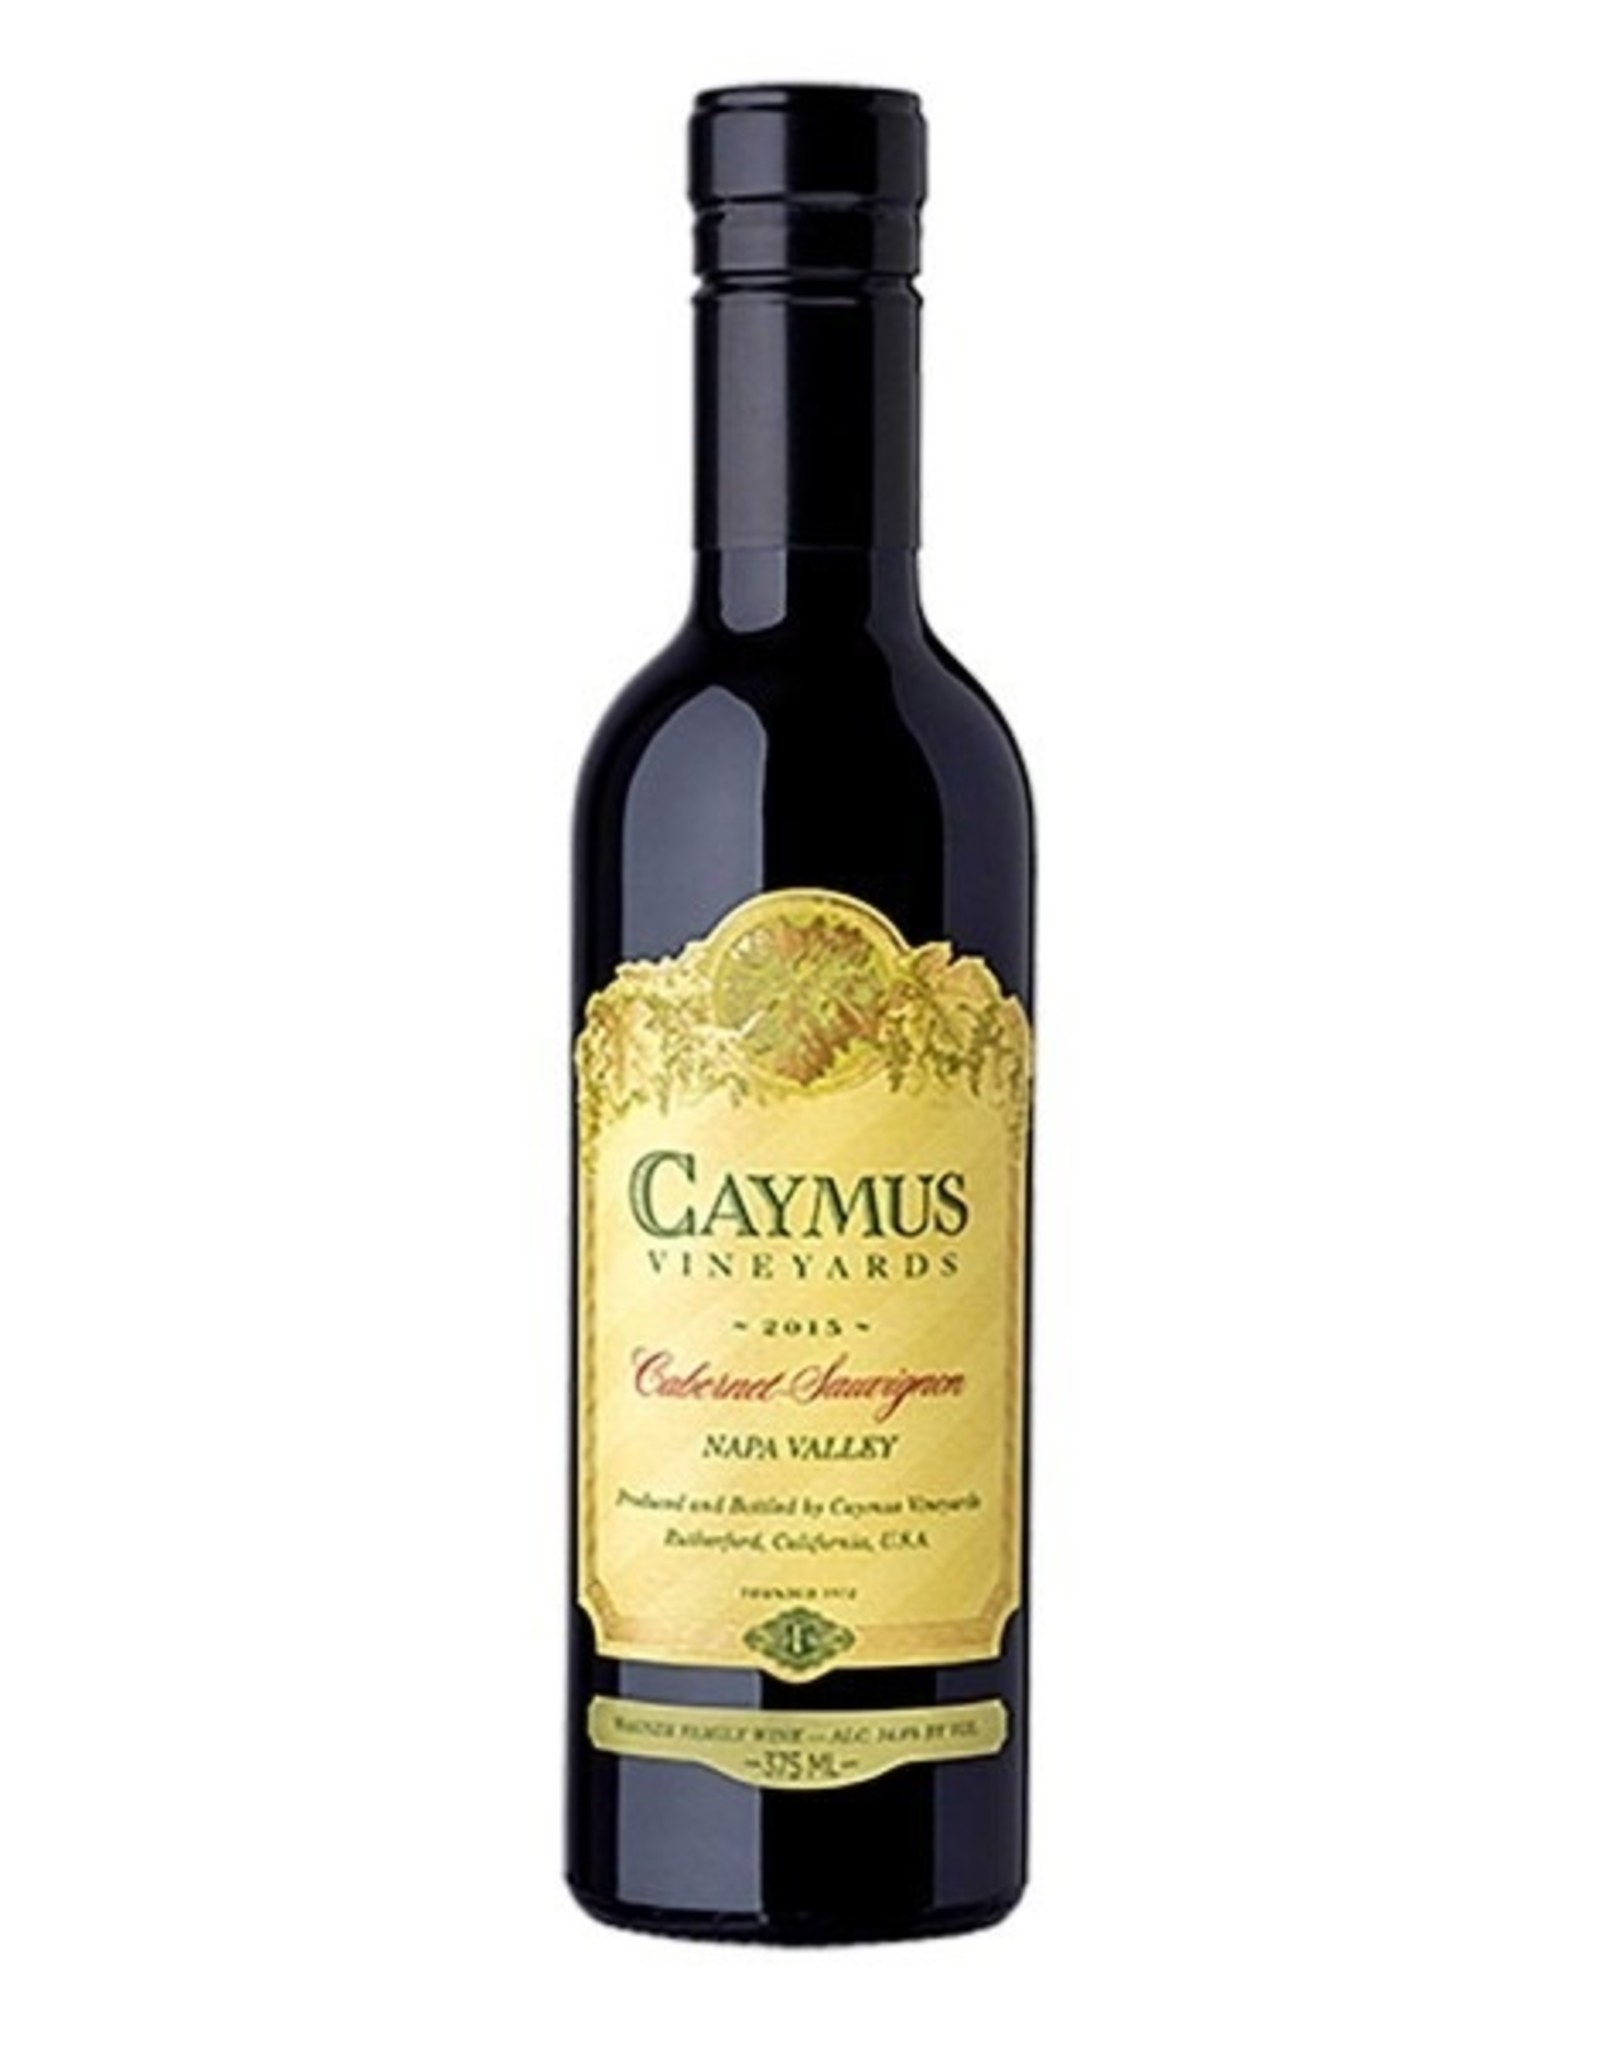 Red Wine 2016, Caymus Vineyards 375ml, Cabernet Sauvignon, Napa, Napa Valley, California, 14.6% Alc, CT90